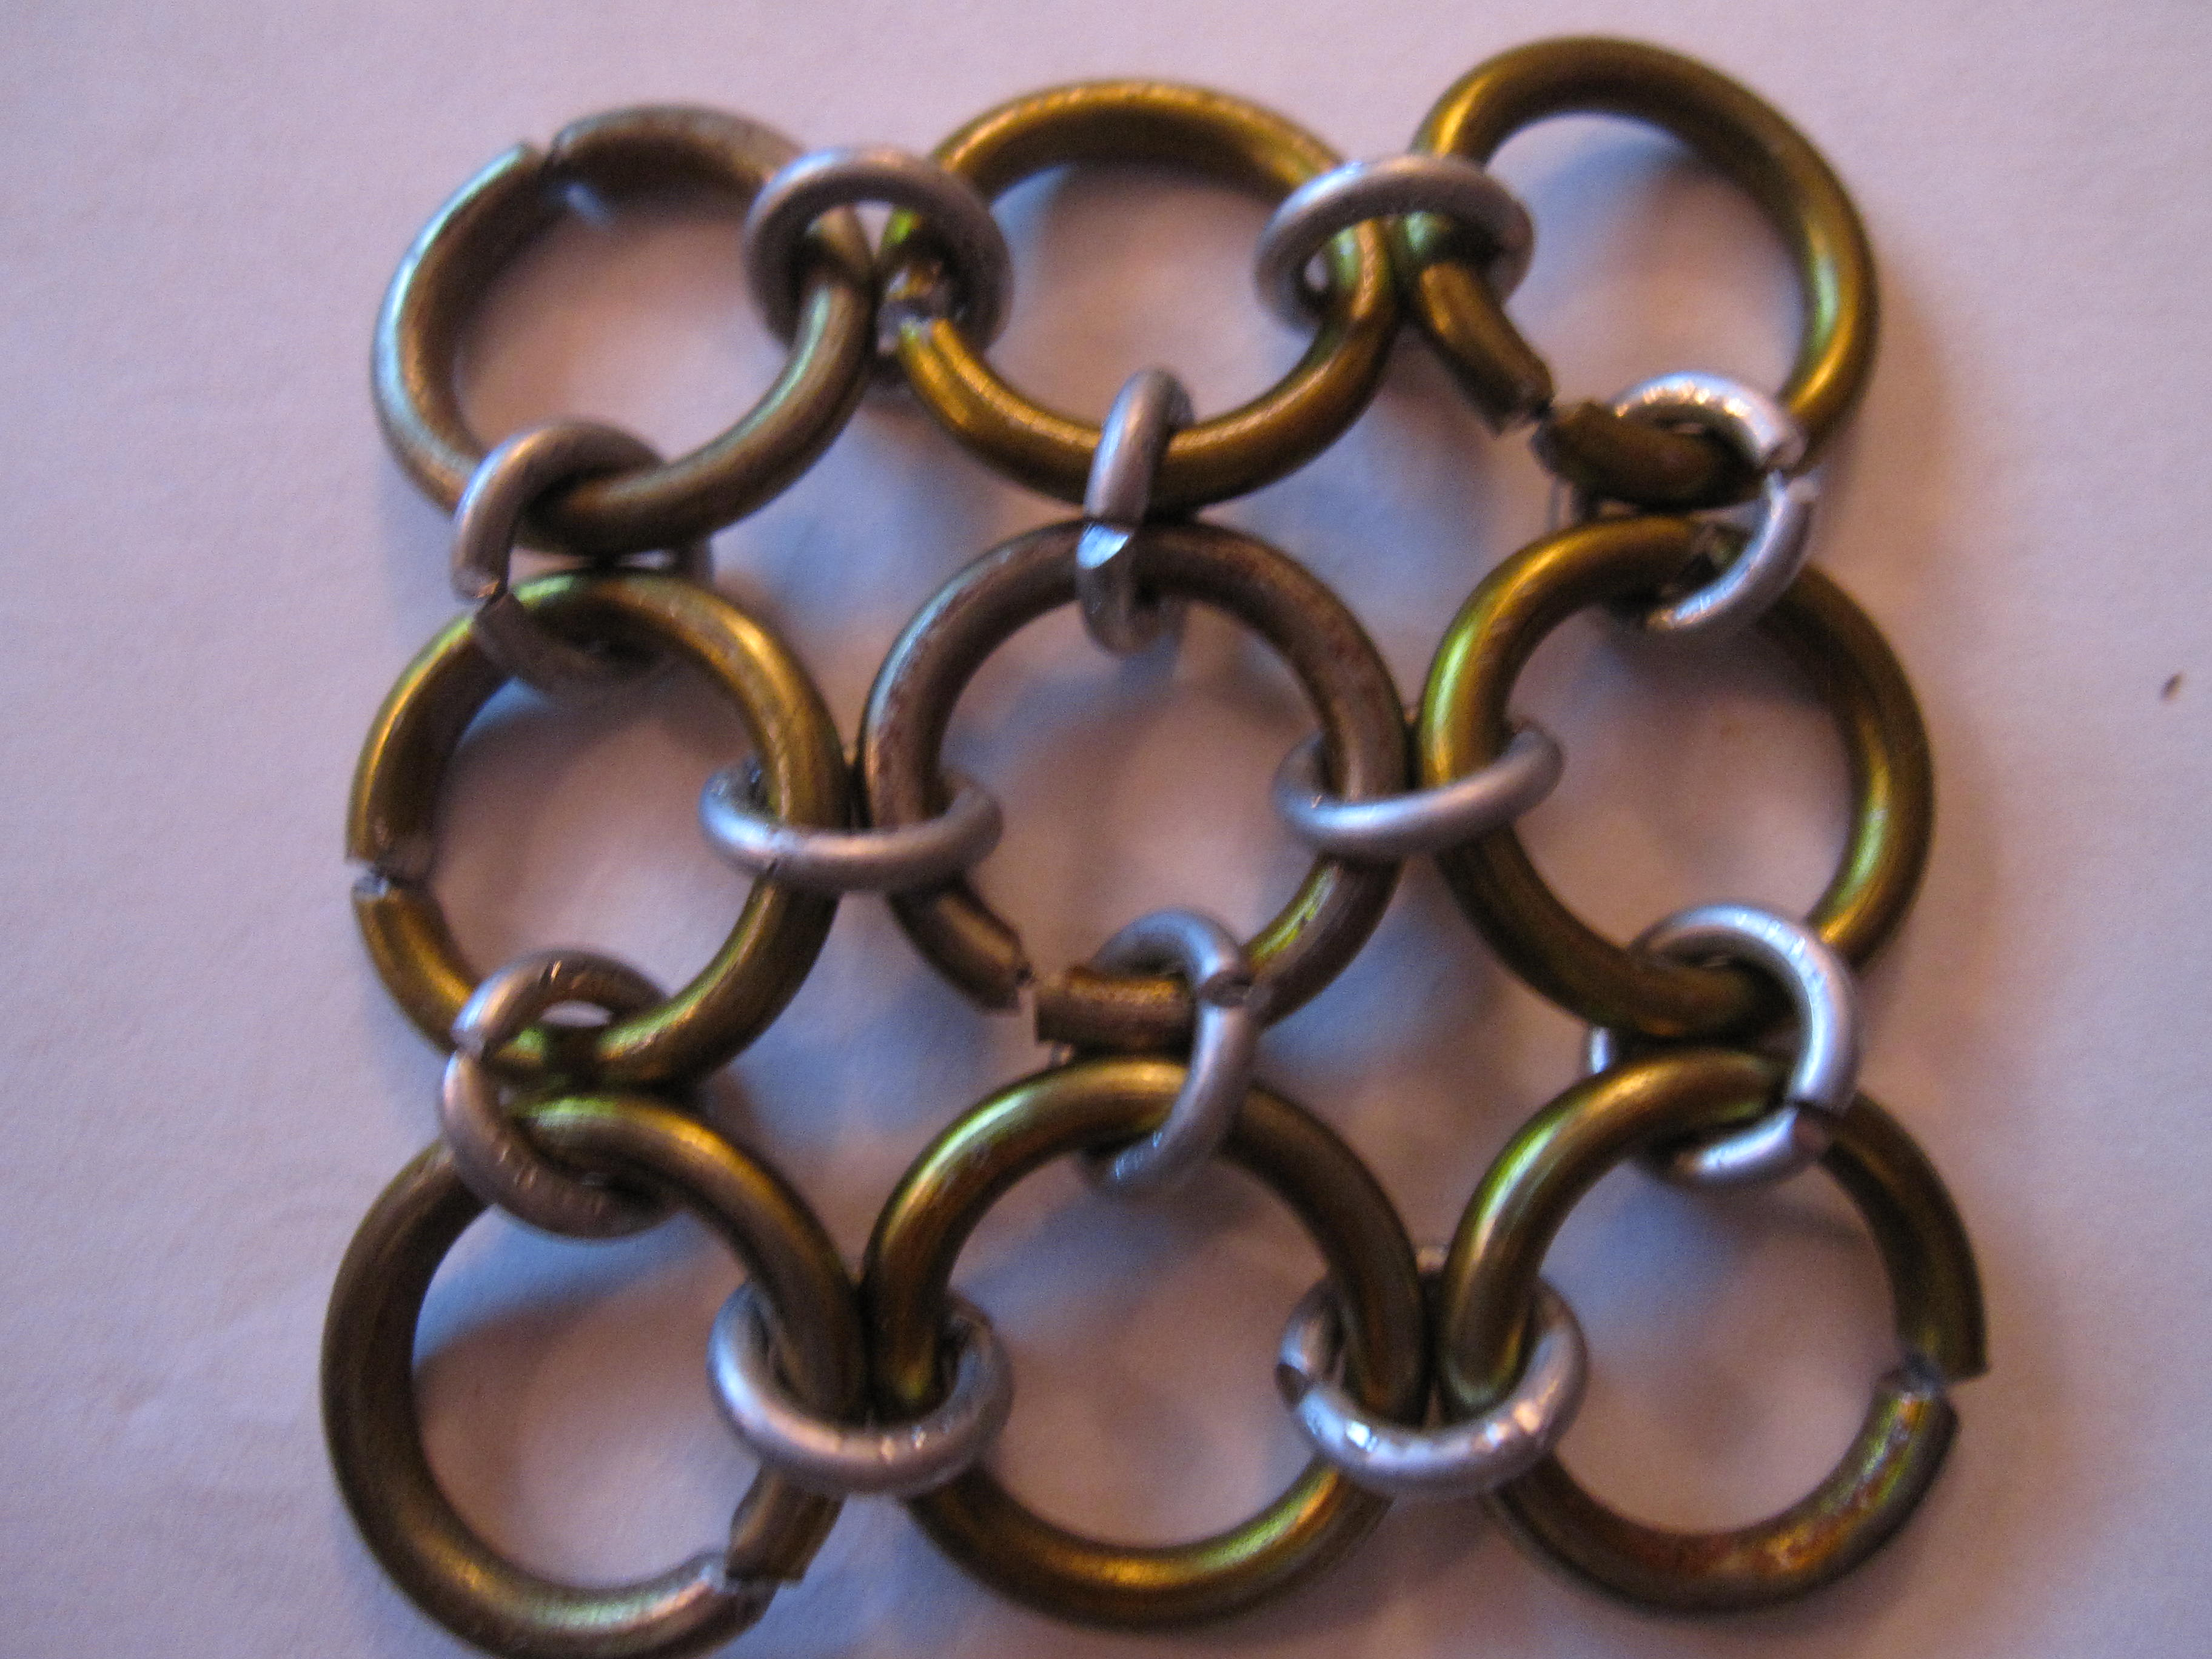 How to Make Japanese 4-1 Maille (Speedweaving)